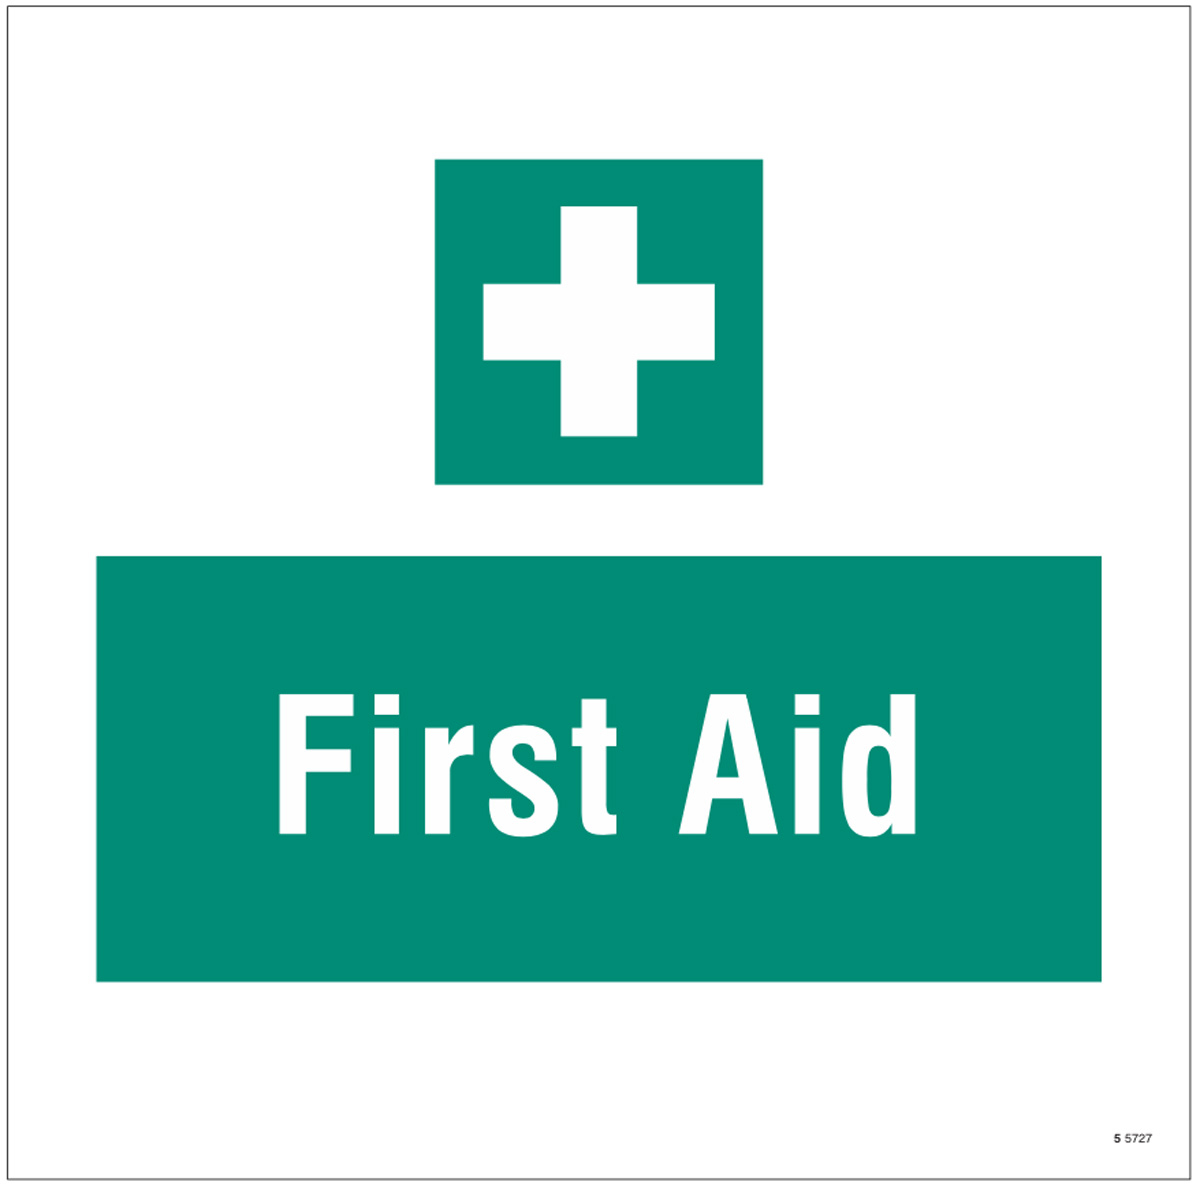 First aid, site saver sign 400x400mm